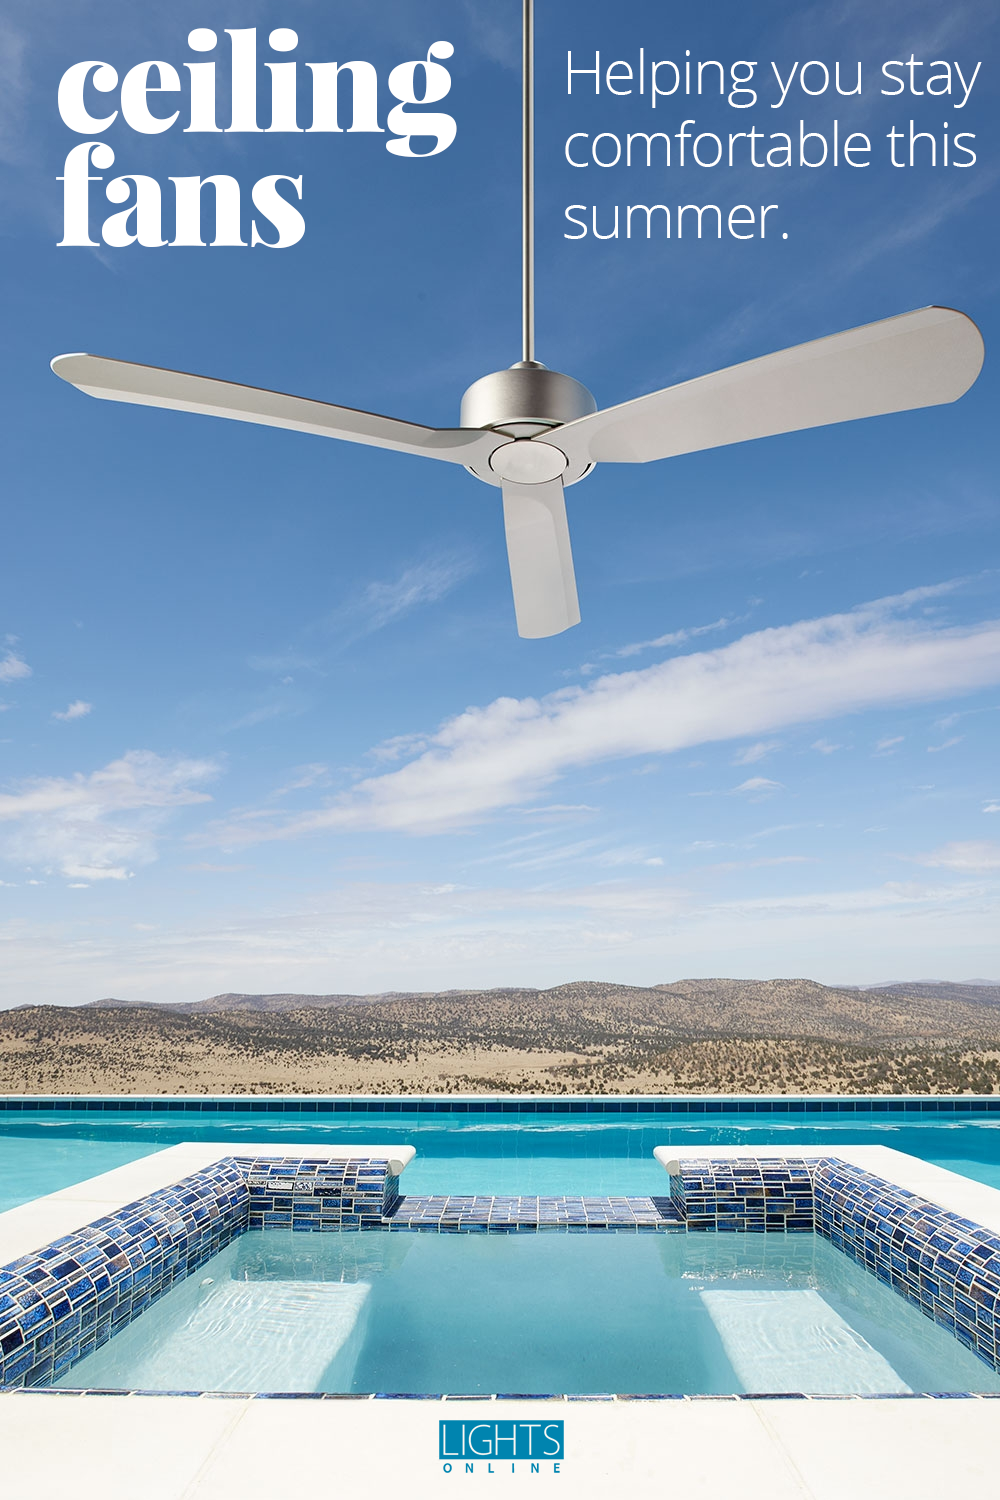 Ceiling Fans Help You Save Money On Cooling And Heating Costs Add Ambient Light And Help You Complete Your Space This Summer Add A C